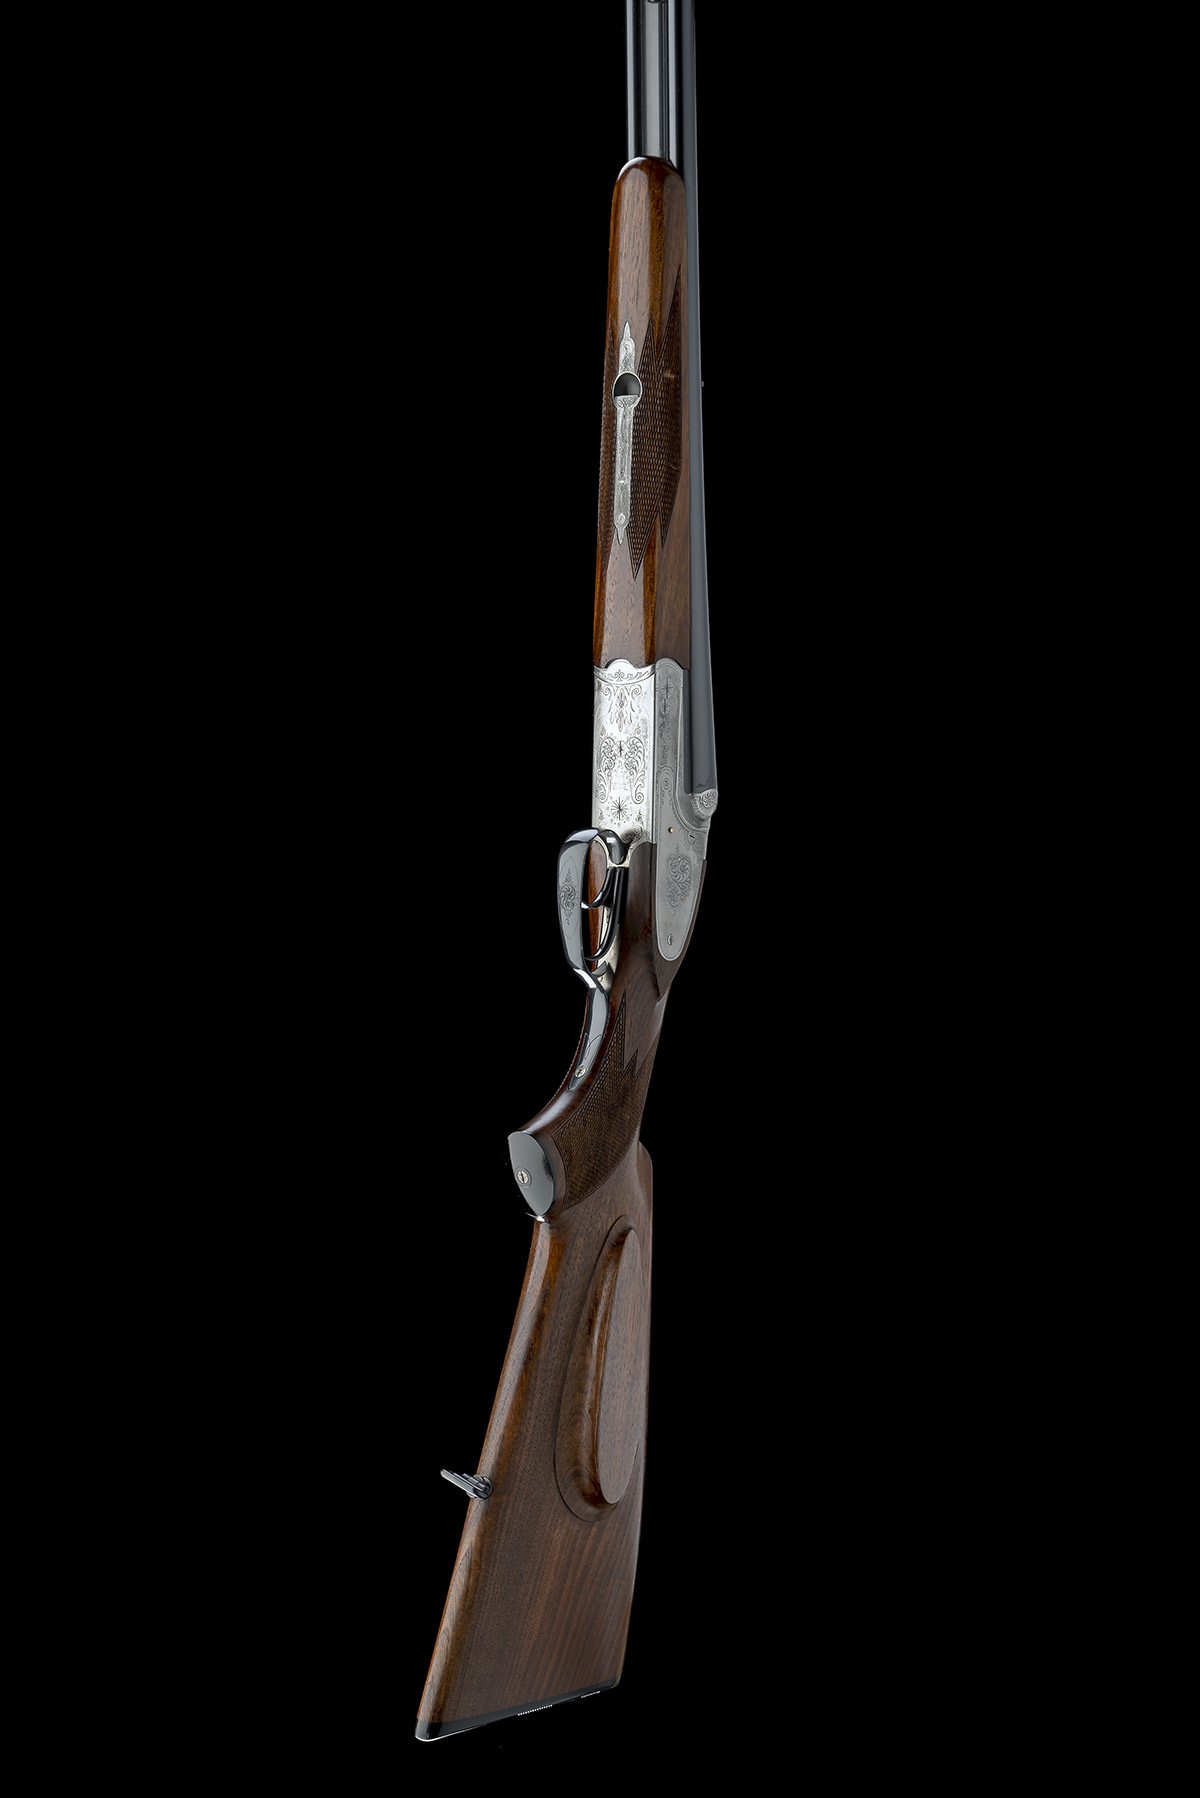 GEBR. MERKEL A 9.3X74R 'MODEL 150' SIDEPLATED BOXLOCK EJECTOR DOUBLE RIFLE, serial no. 570514, for - Image 6 of 8